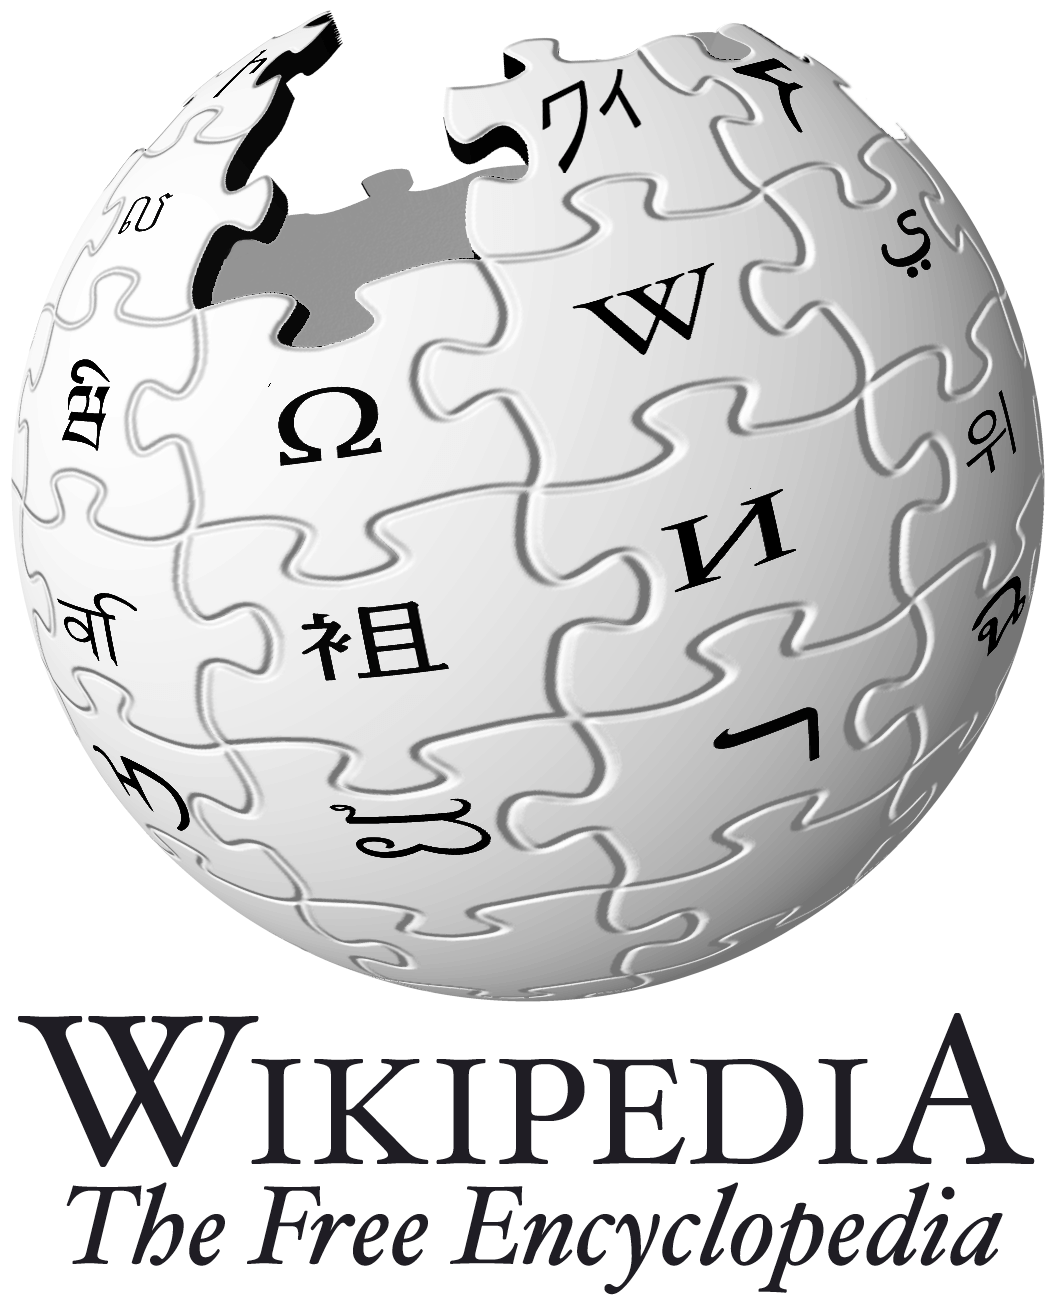 https://i2.wp.com/upload.wikimedia.org/wikipedia/commons/9/91/Nohat-logo-XI-big-text.png